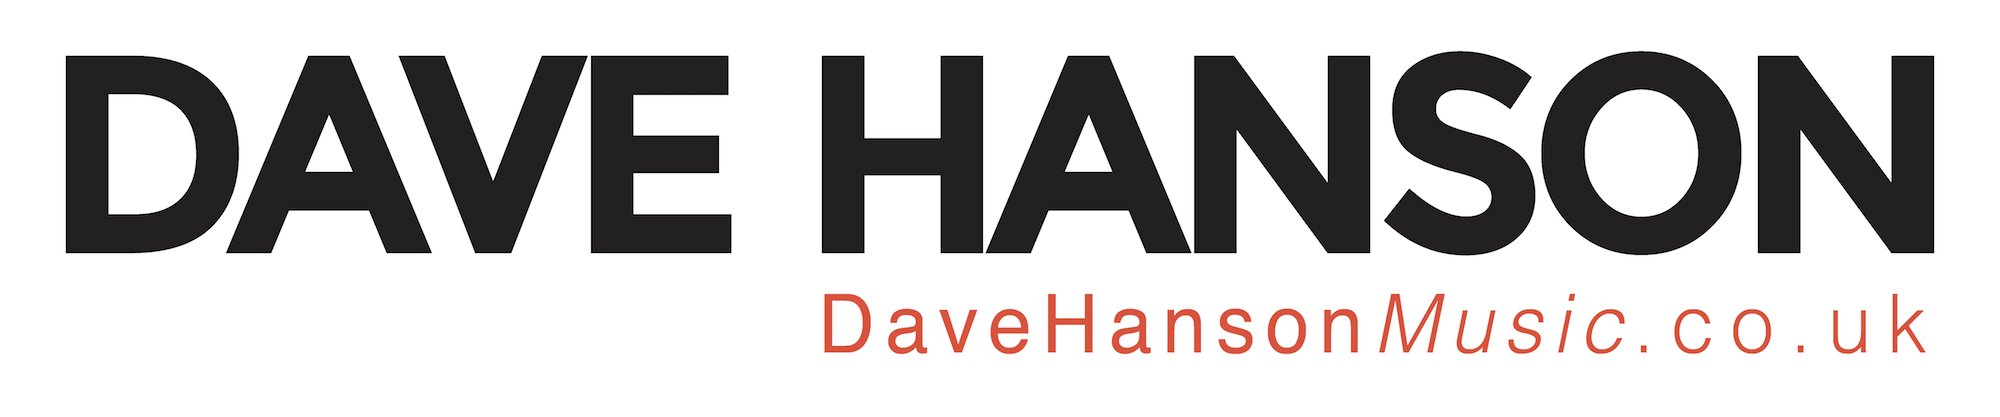 DAVE HANSON MUSIC | davehansonmusic.co.uk